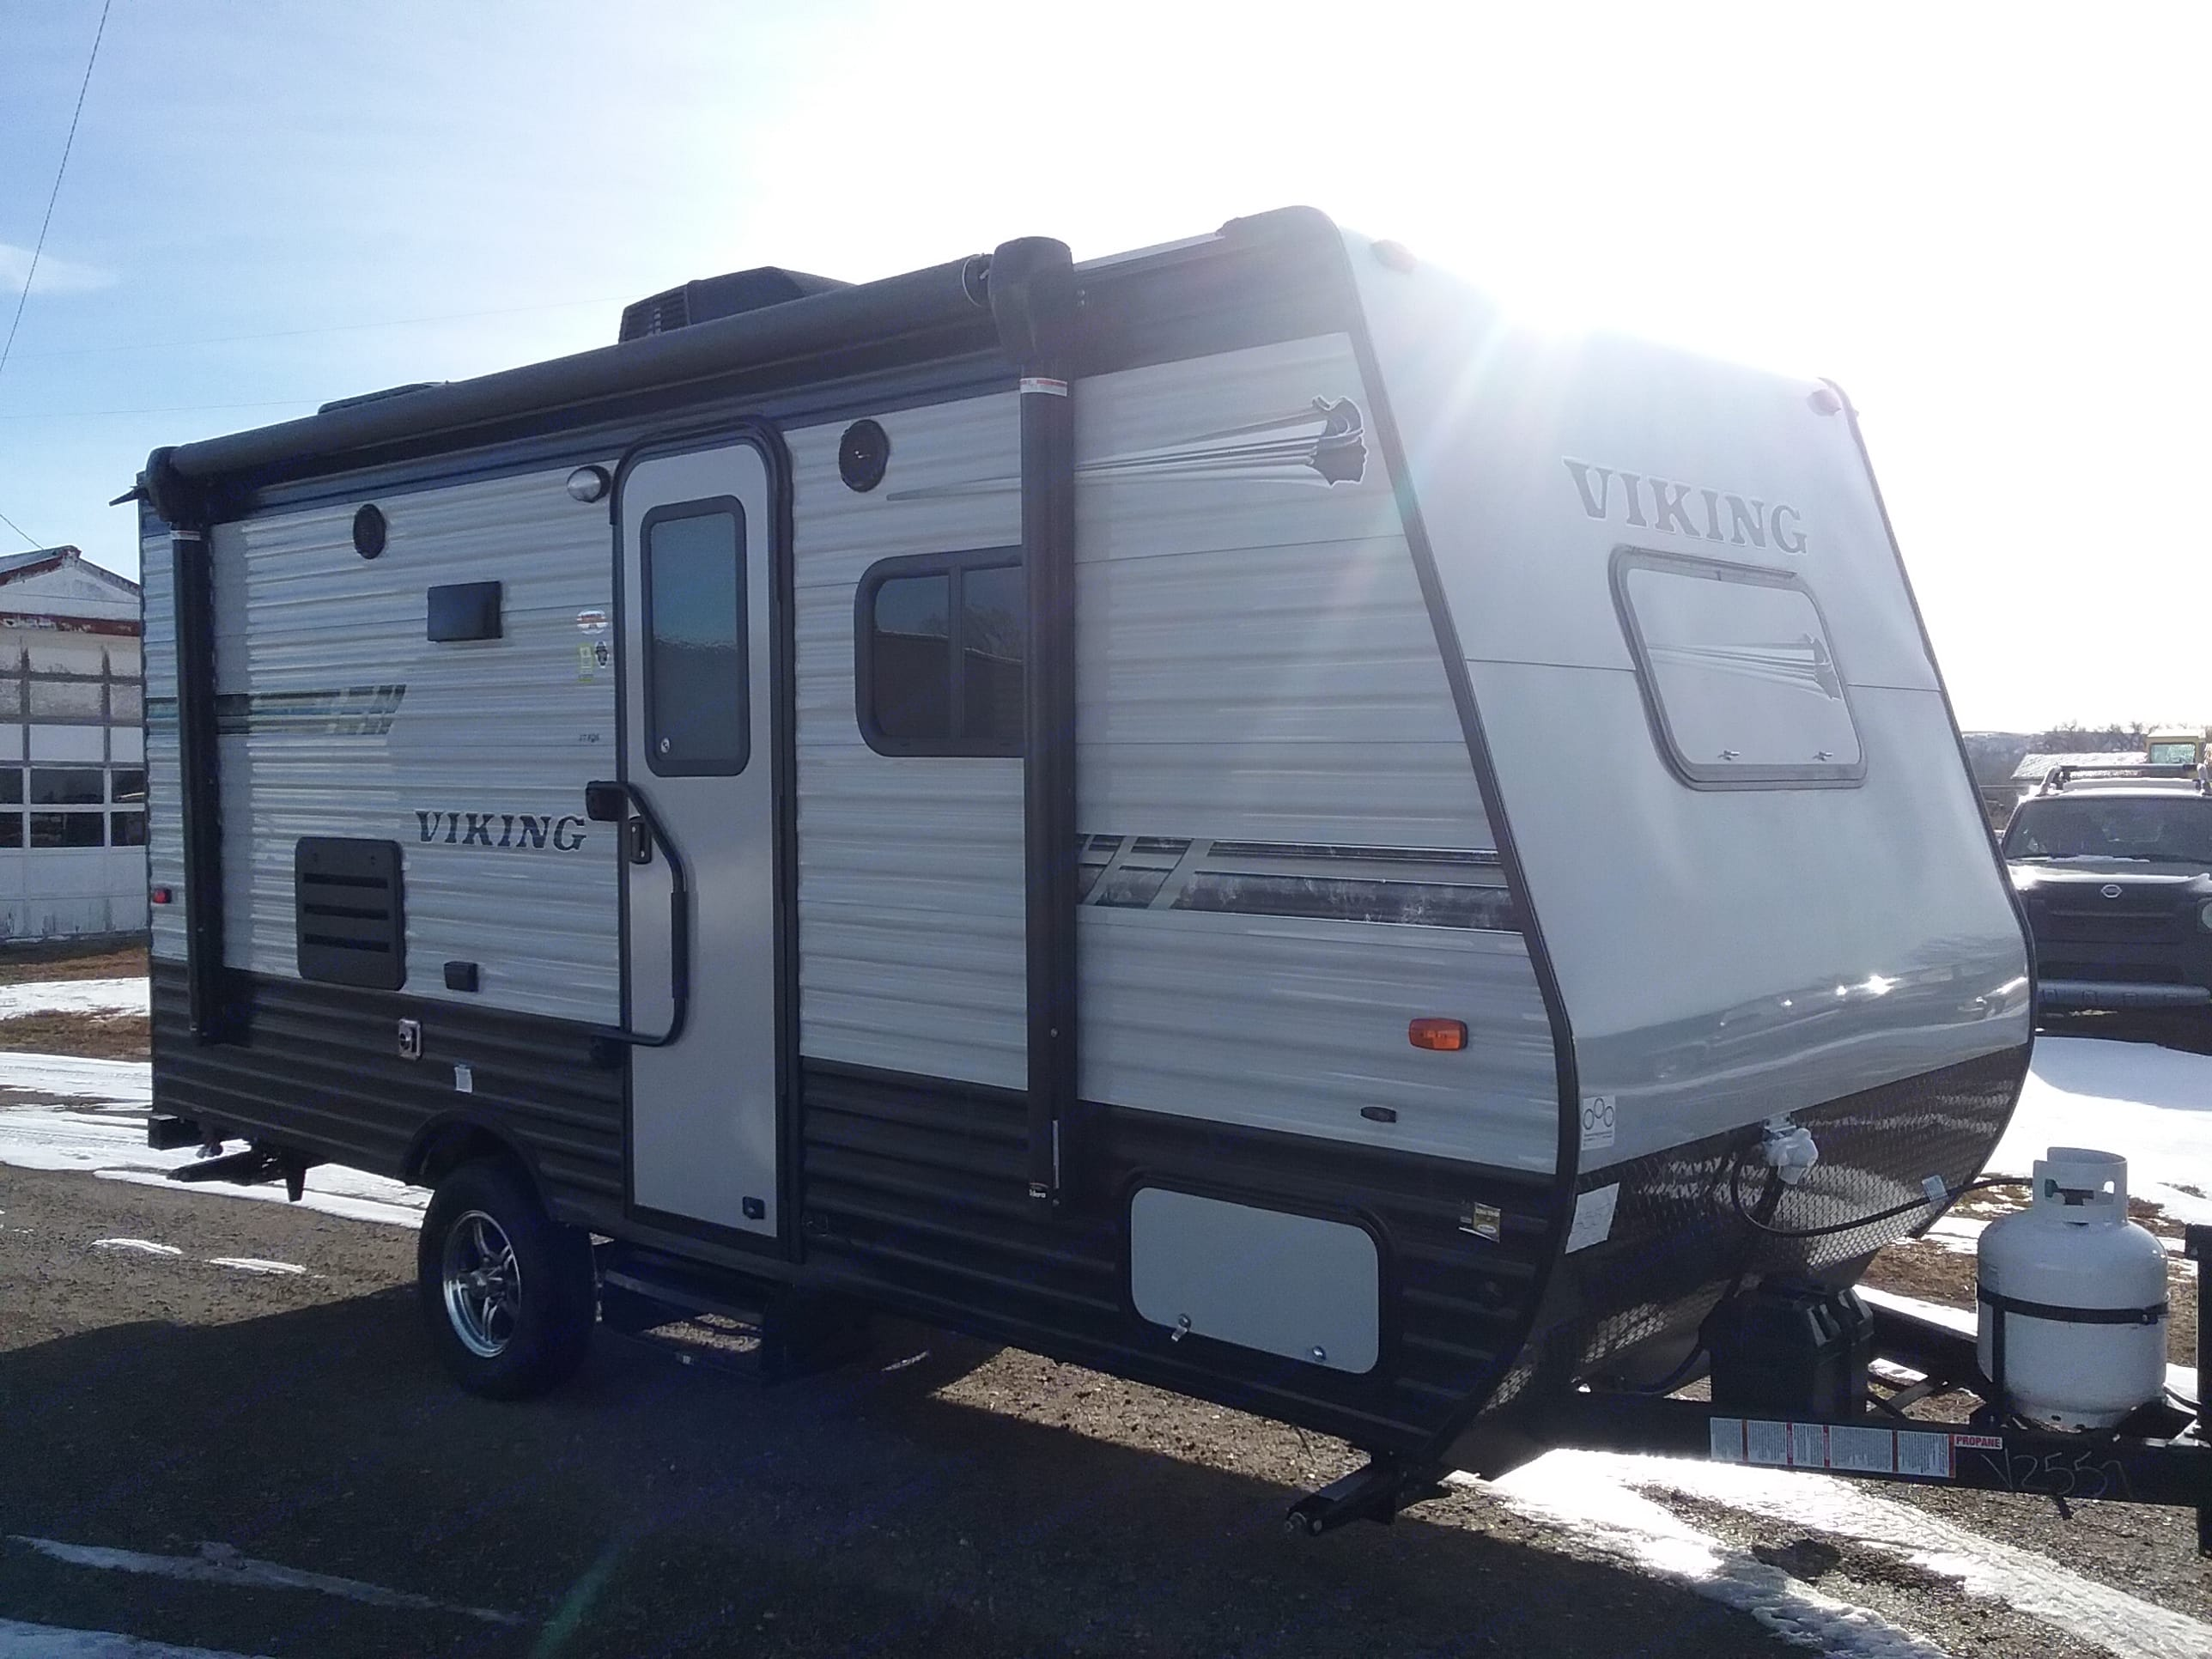 The sun is shining on the new 2019, just picked up from the dealer today!. Coachmen Viking 2019